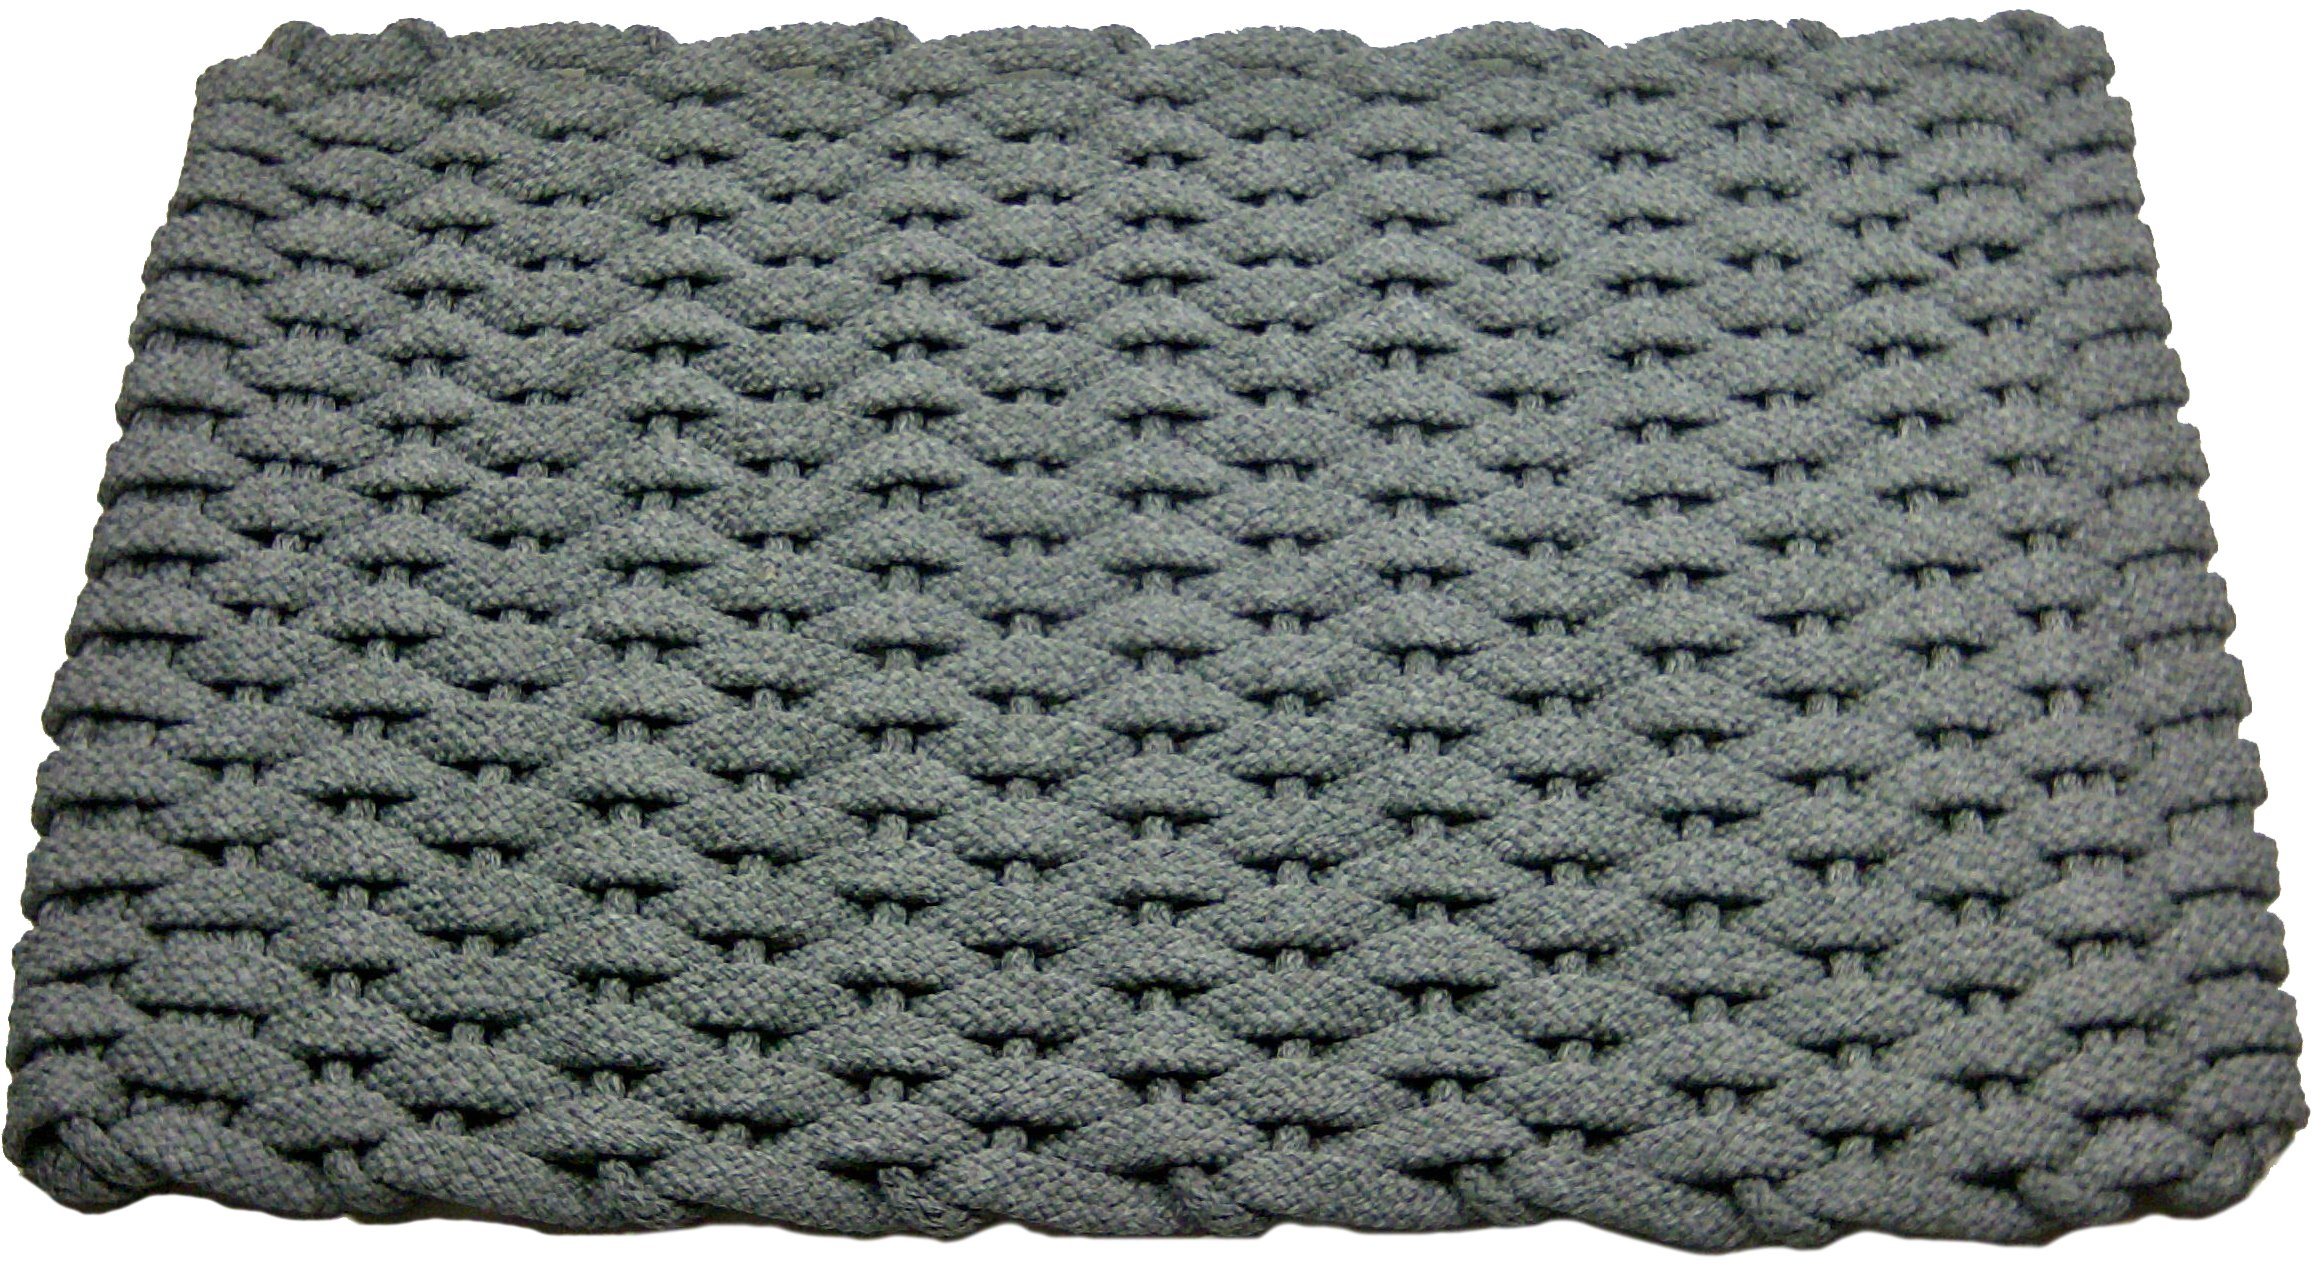 Rockport Rope Doormats 2038206 Kitchen Comfort Mats, 20 by 38-Inch, Gray